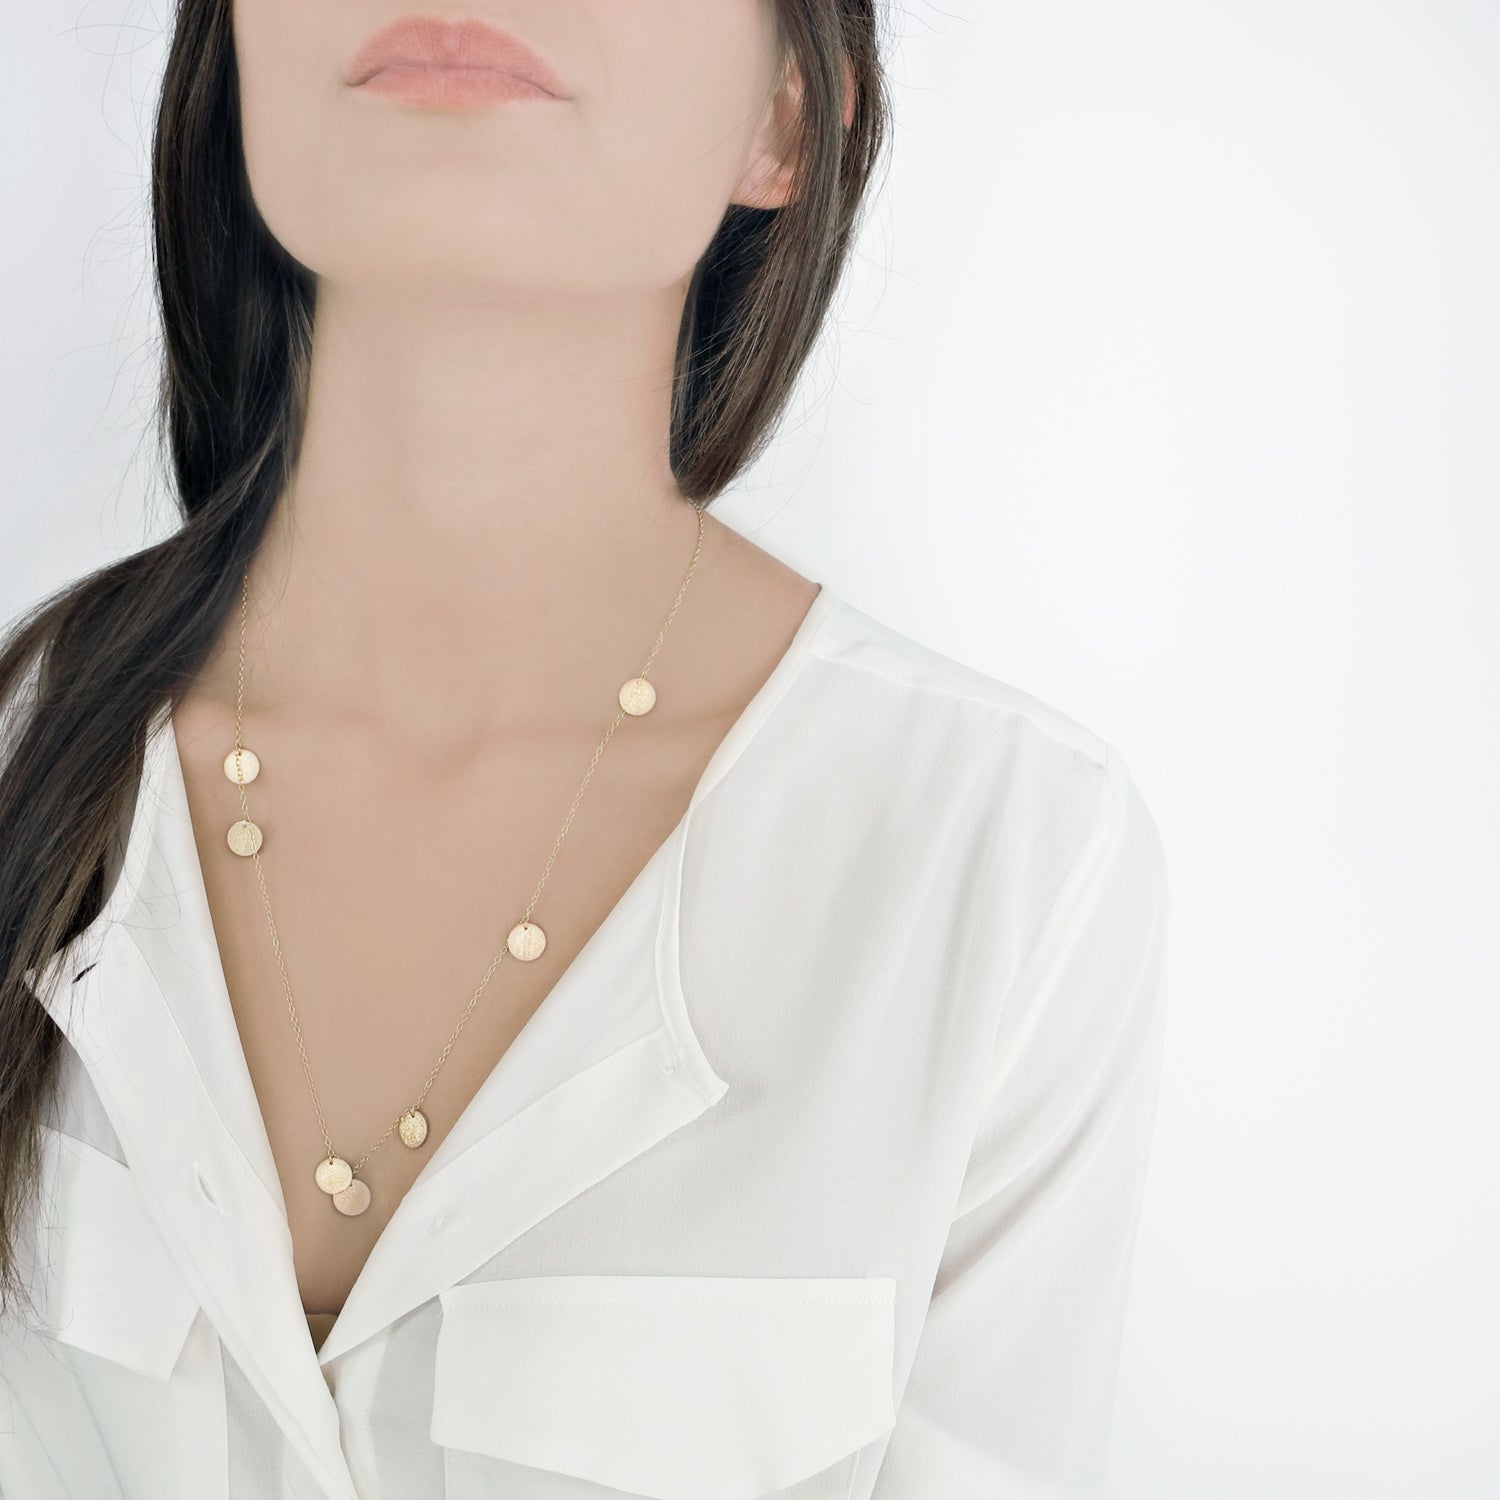 Alternating seven small tags creates a simple but extravagant design. This asymmetrical necklace is a modest statement piece.